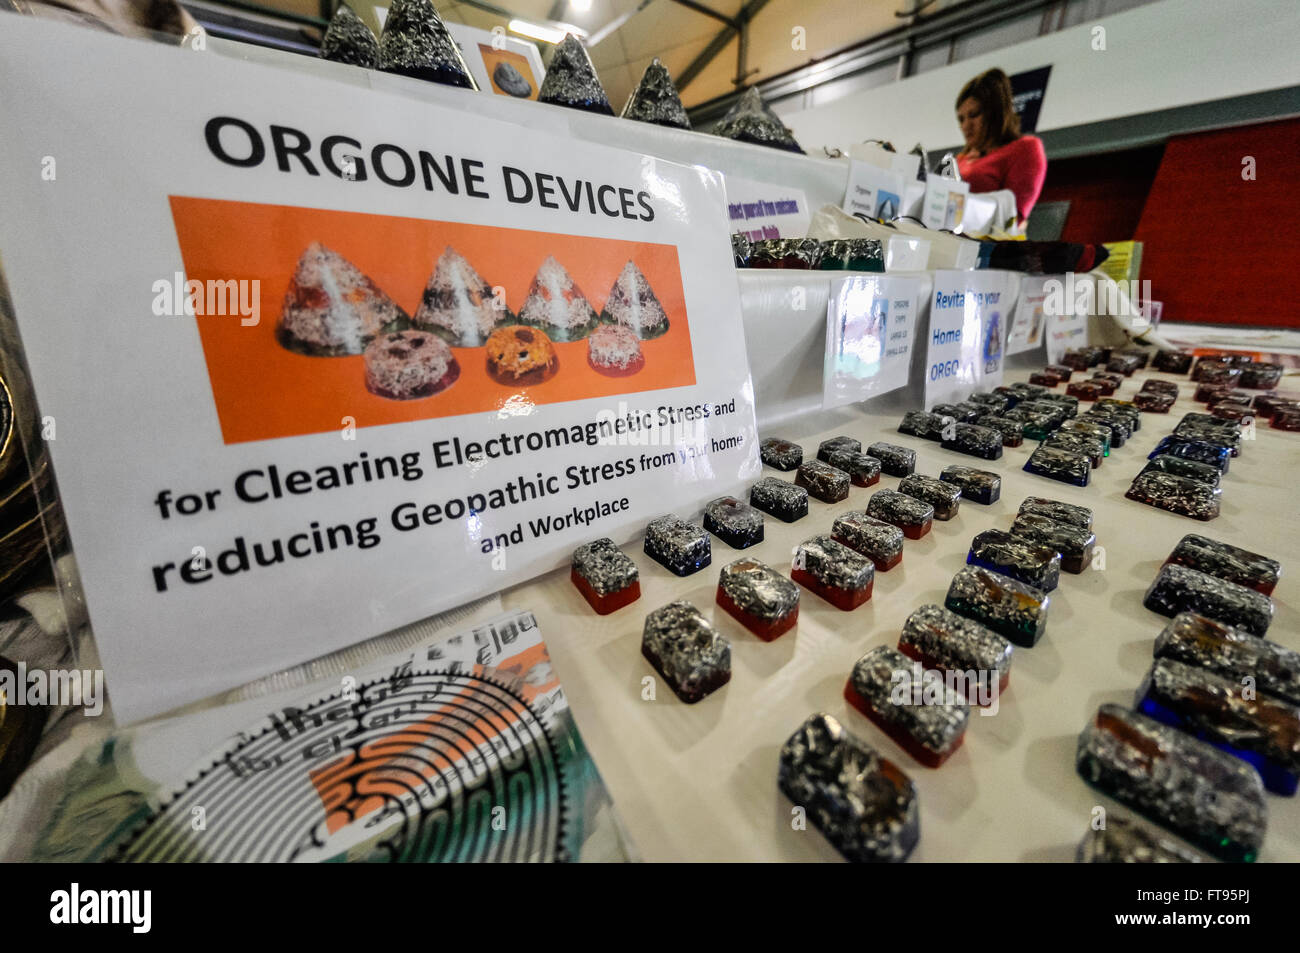 Lisburn, Northern Ireland. 25 Mar 2016 - Orgone Devices on sale at a holistic and spiritual fair.  These are claimed - Stock Image